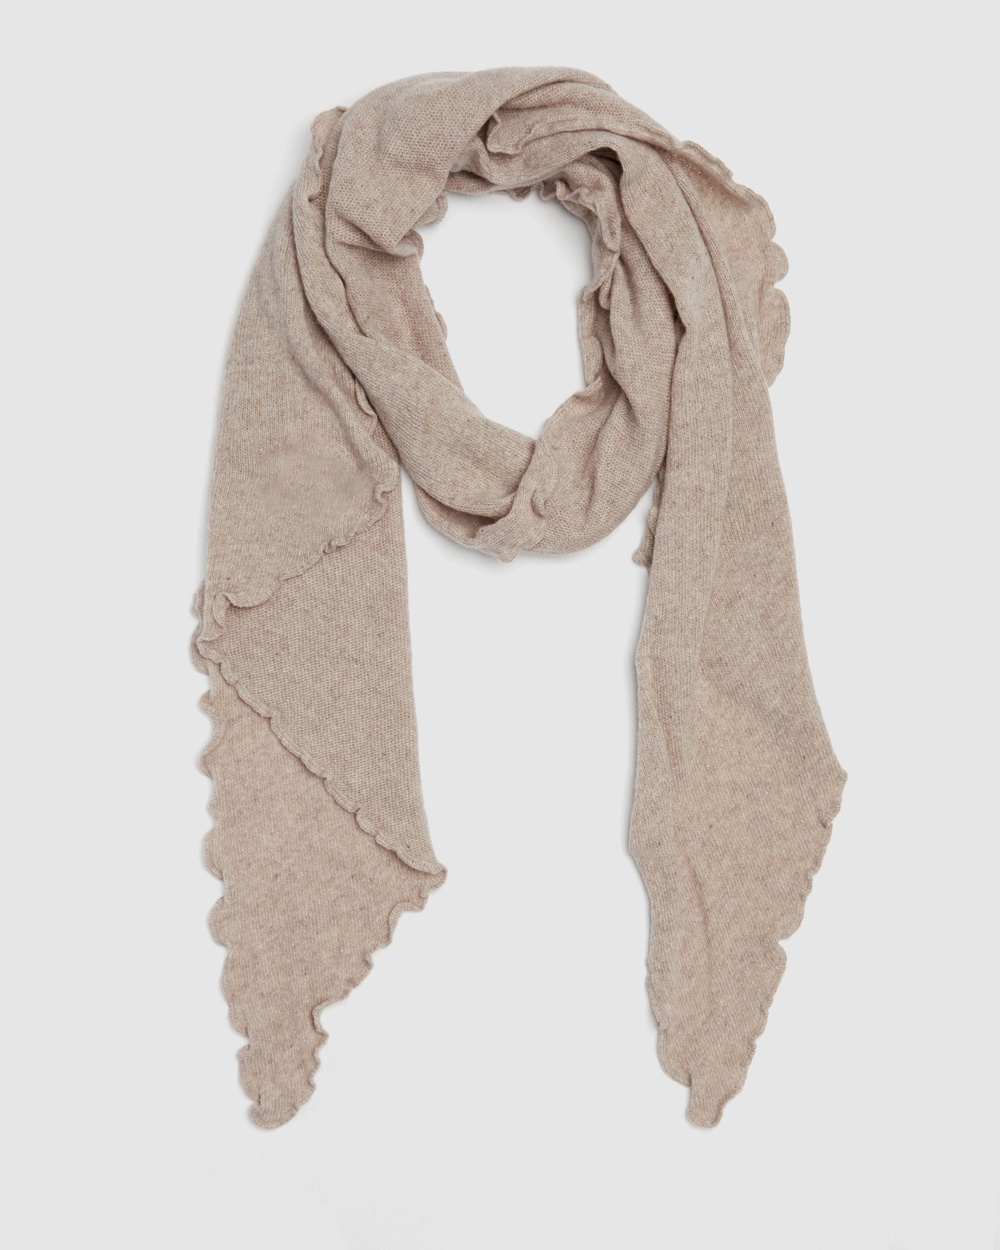 Kate & Confusion Asymmetrical Scarf Scarves Gloves Pink